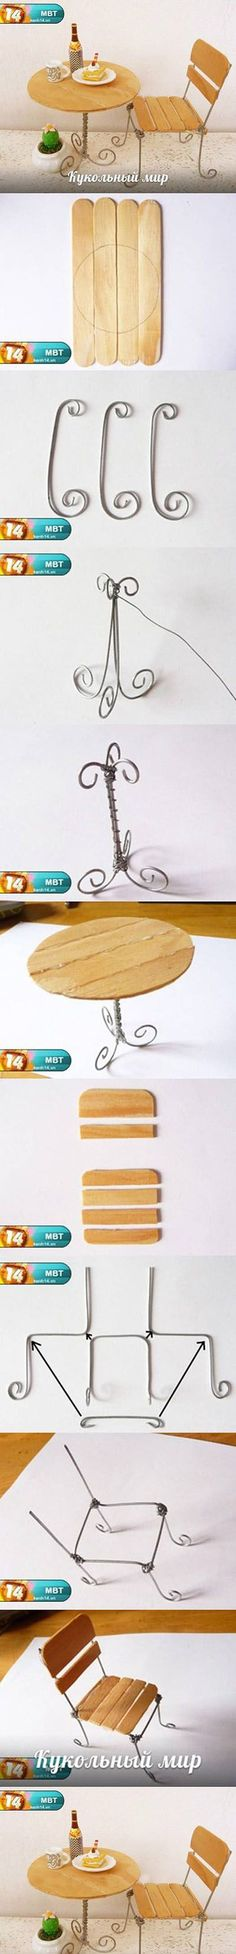 Diy Mini Chair | DIY  Crafts Tutorials - would be great for a doll house or even a fairy house ;).